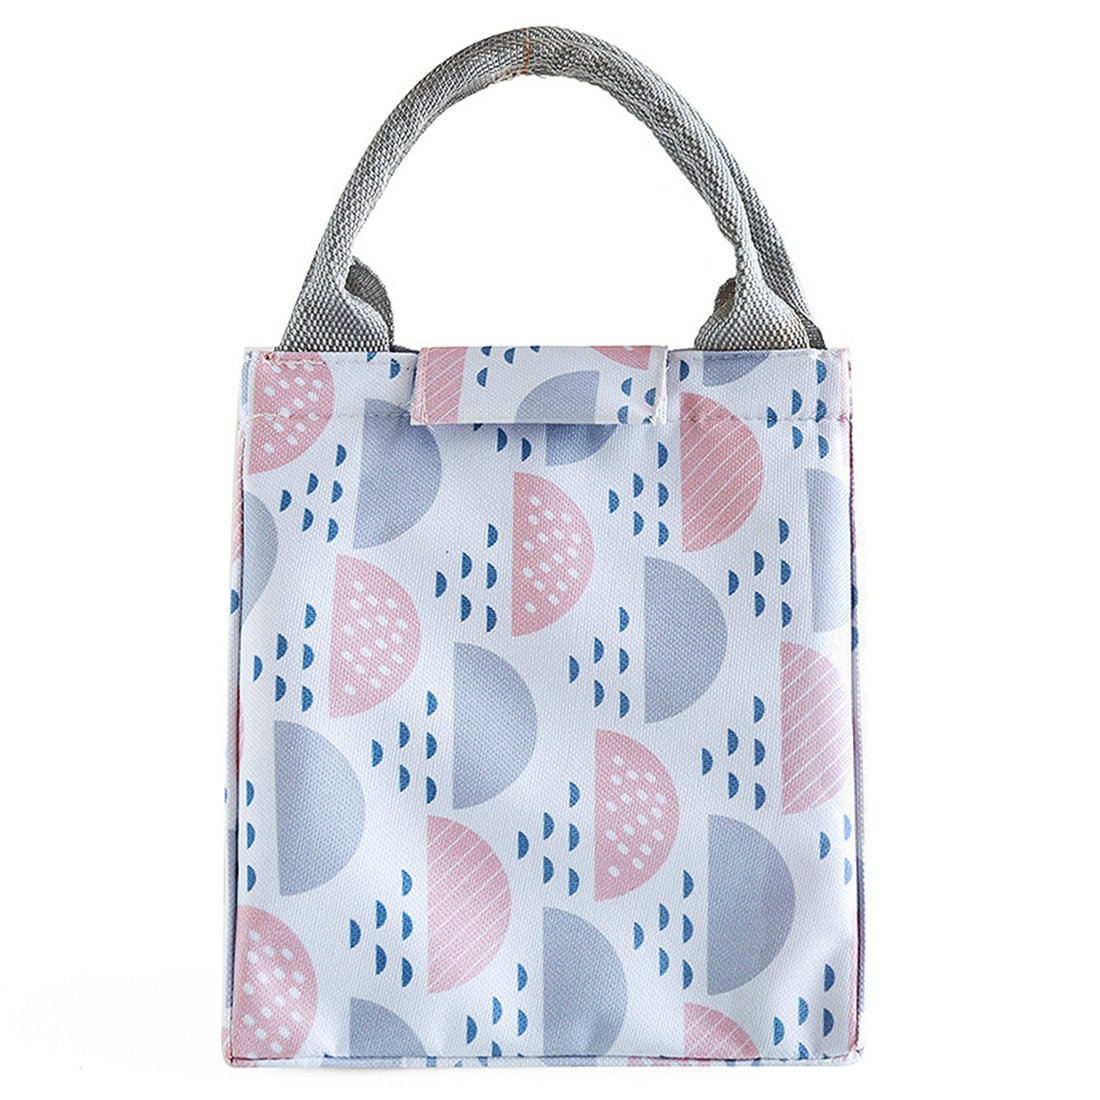 CC-C60010-CN School and Picnic Colourful semicircle Oyachic Thermal Lunch Bag Insulated Tote Leakproof Zipper Bag for Office